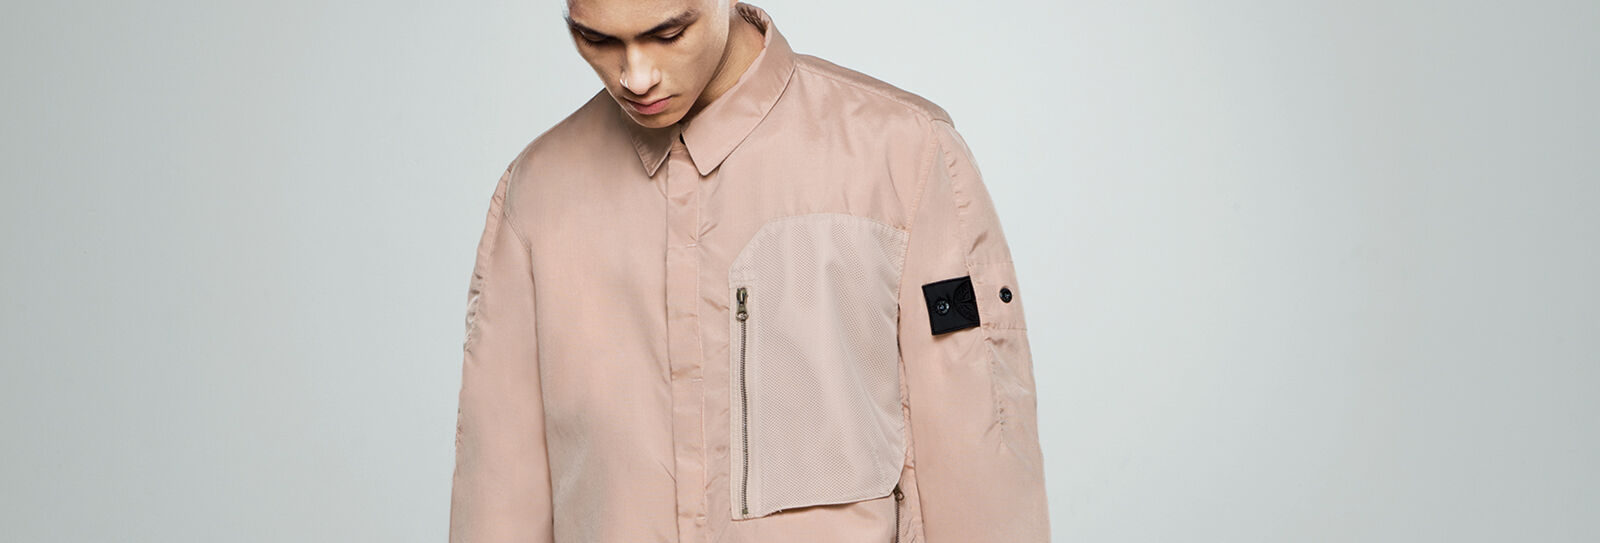 Close up shot of model wearing a beige overshirt with an off white chest pocket with zipper fastening and the Stone Island Shadow Project badge on the upper left sleeve.